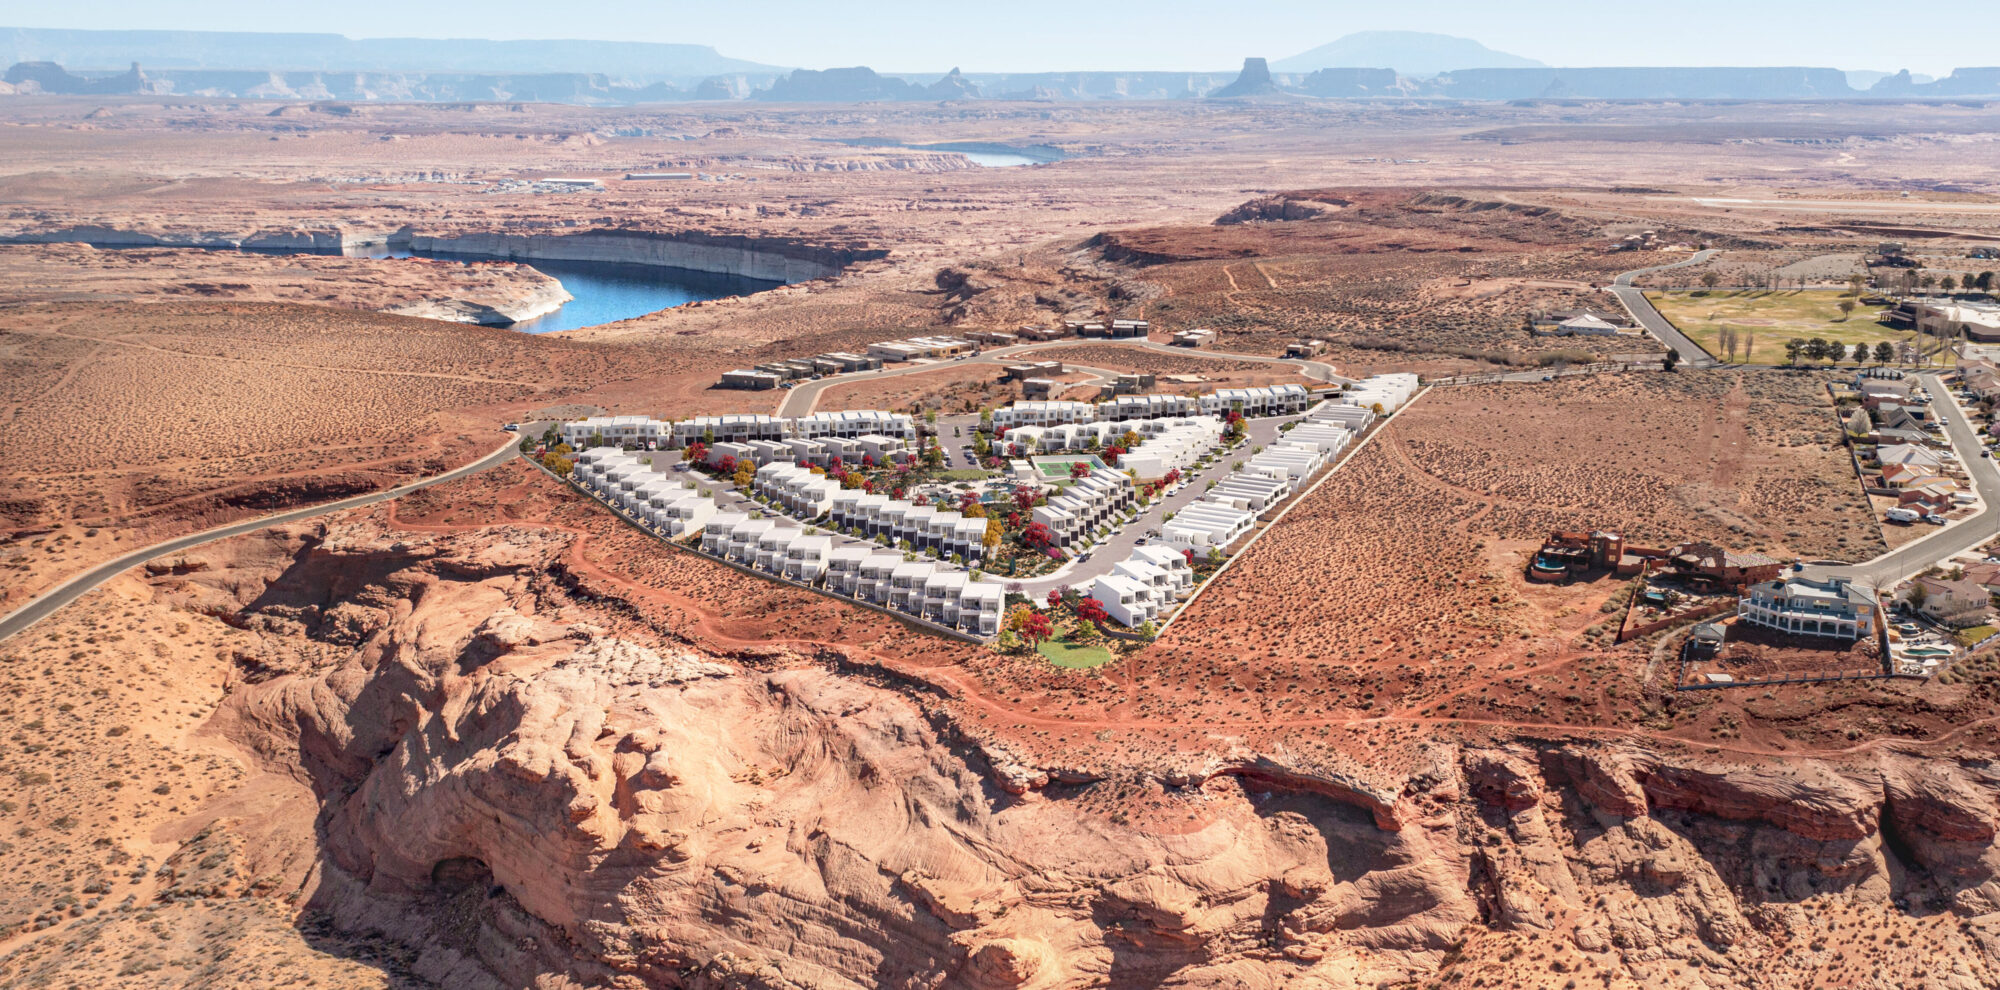 Aerial view of Indigo Ridge housing development with lake powell and navajo mountain in the distance